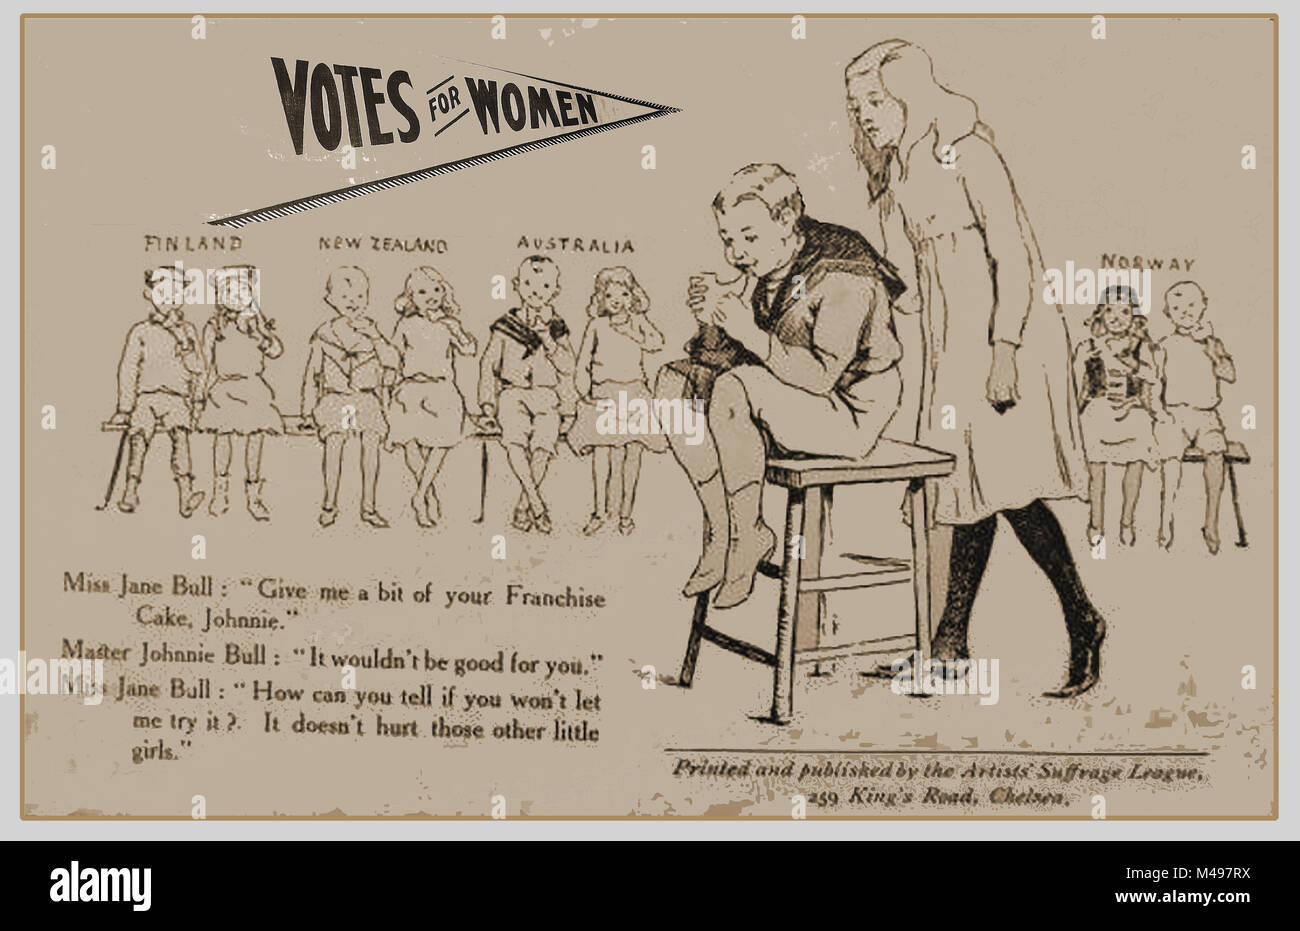 SUFFRAGETTES - An old Artist's Suffrage League illustration  - International votes for women (Finland, New Zealand, - Stock Image